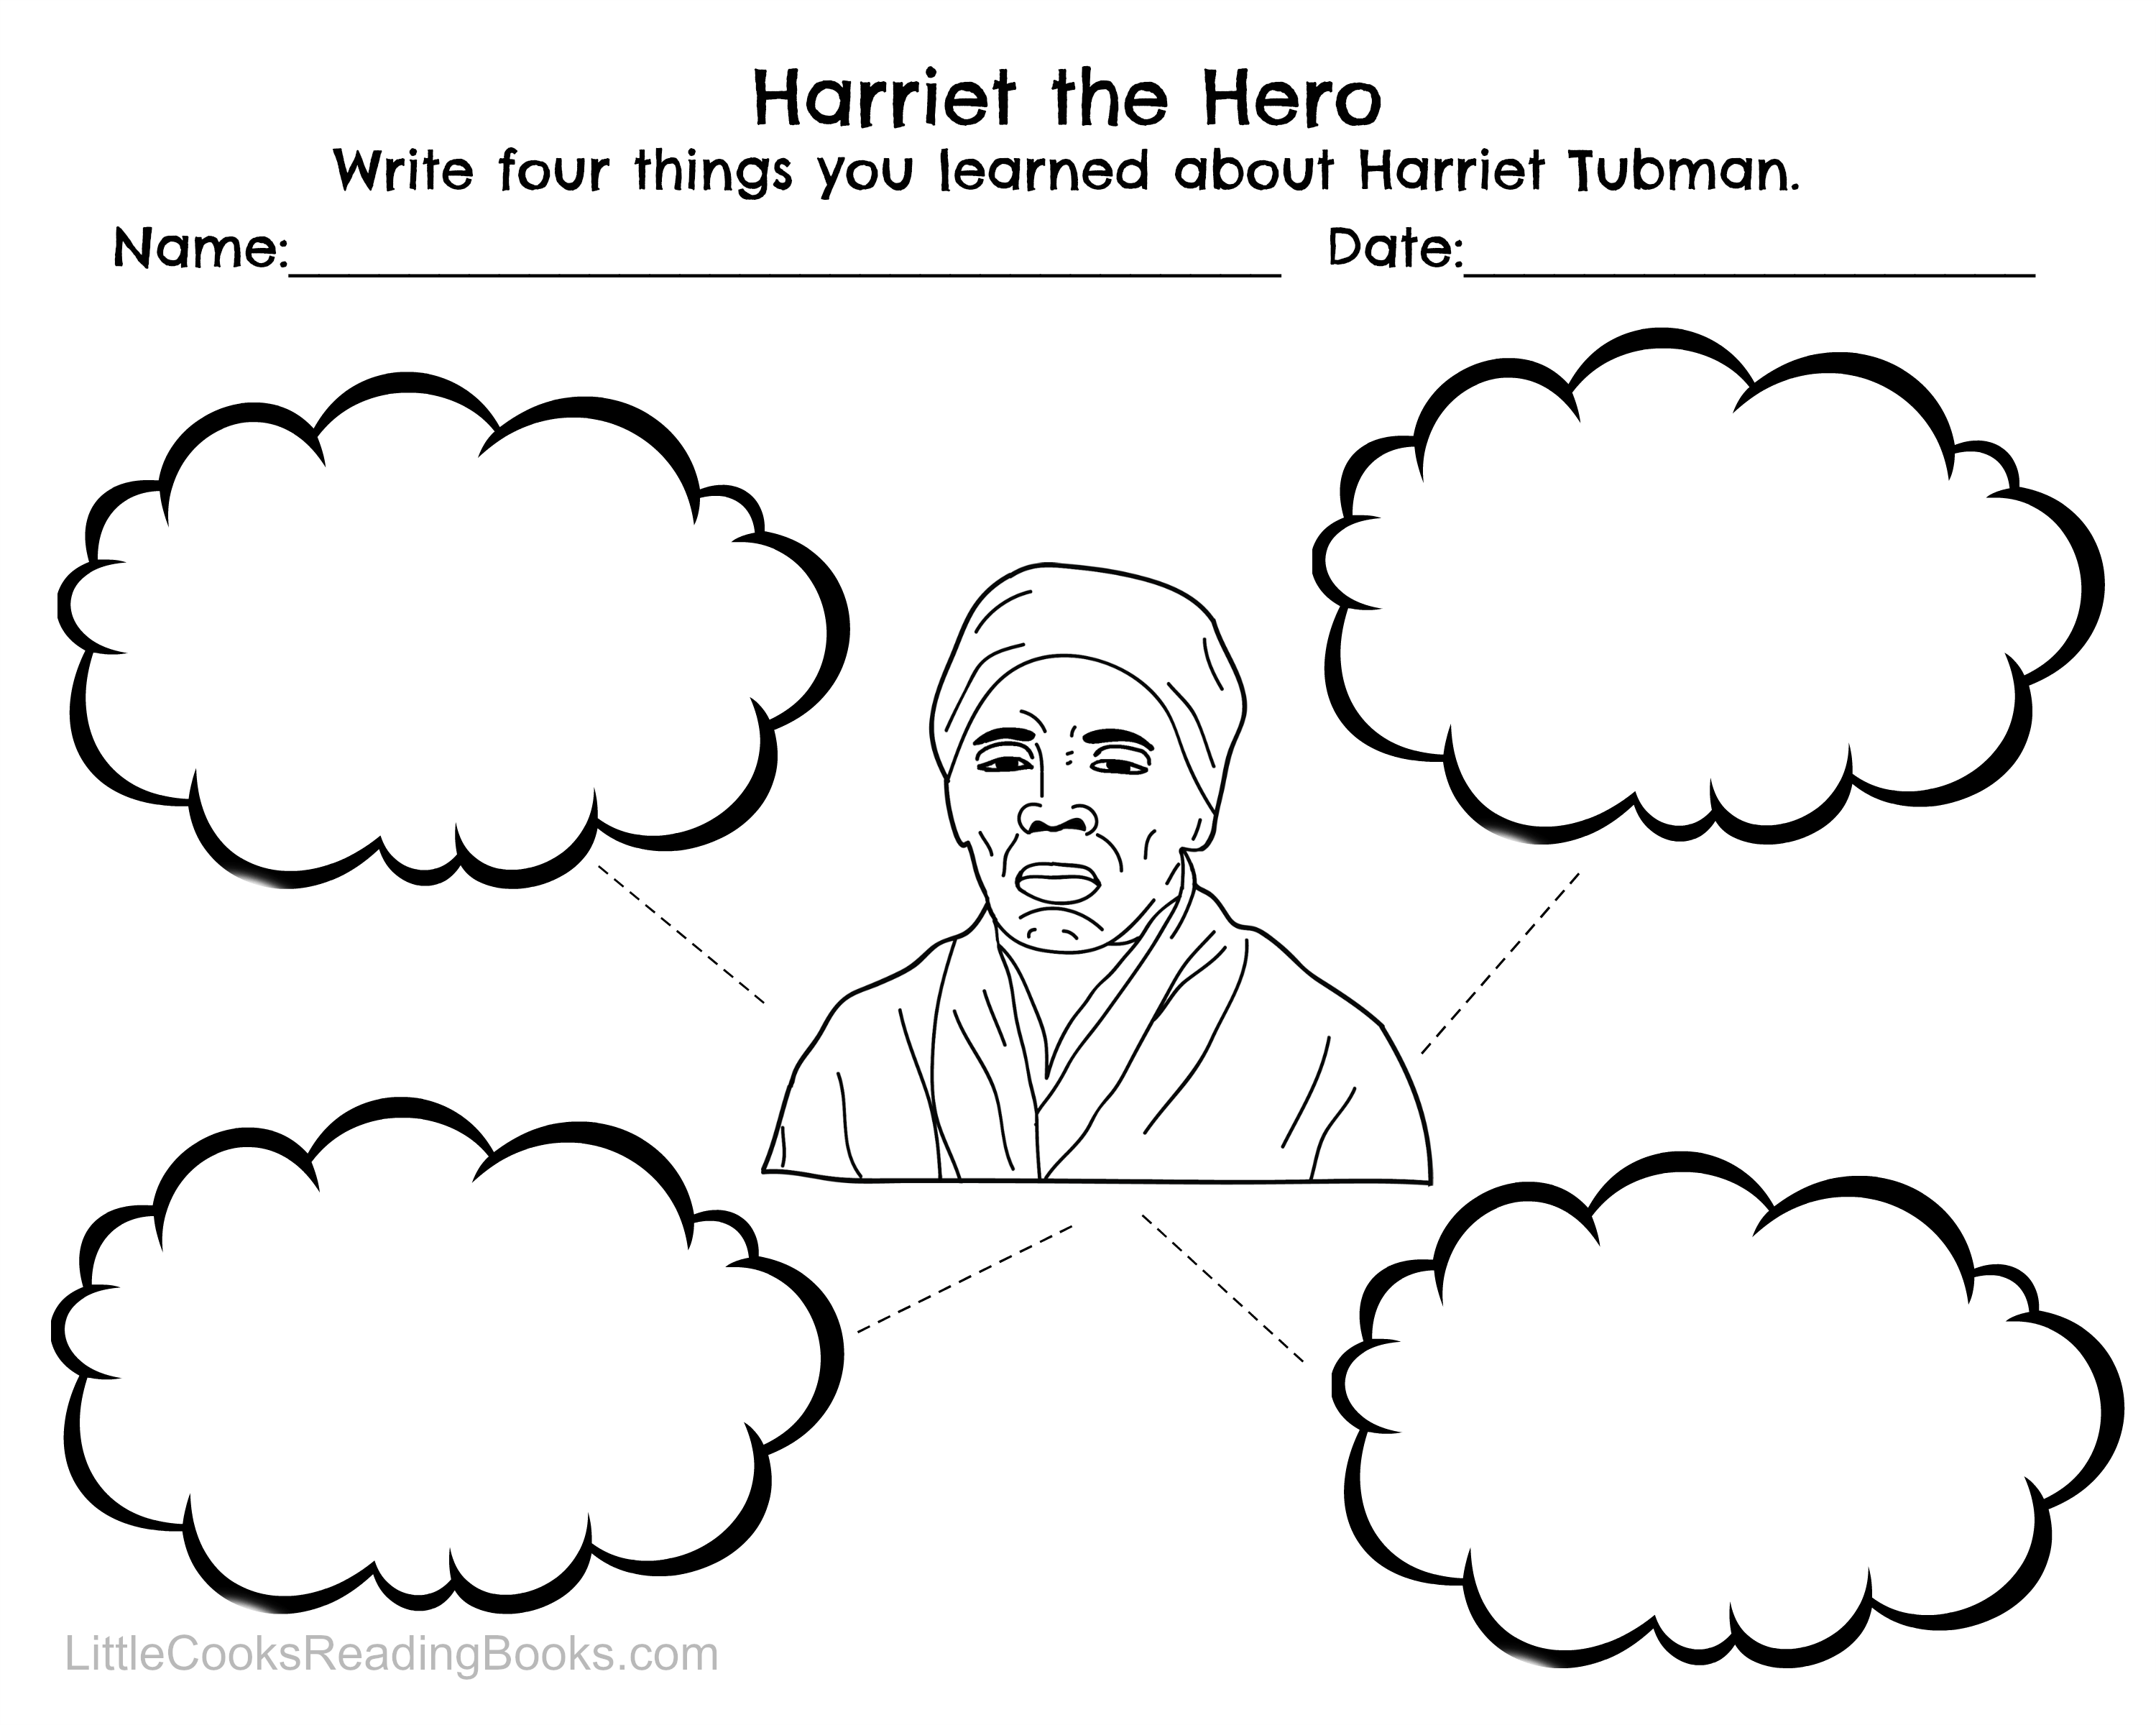 worksheet Harriet Tubman Worksheets harriet tubman and underground railroad free printables little cooks reading books